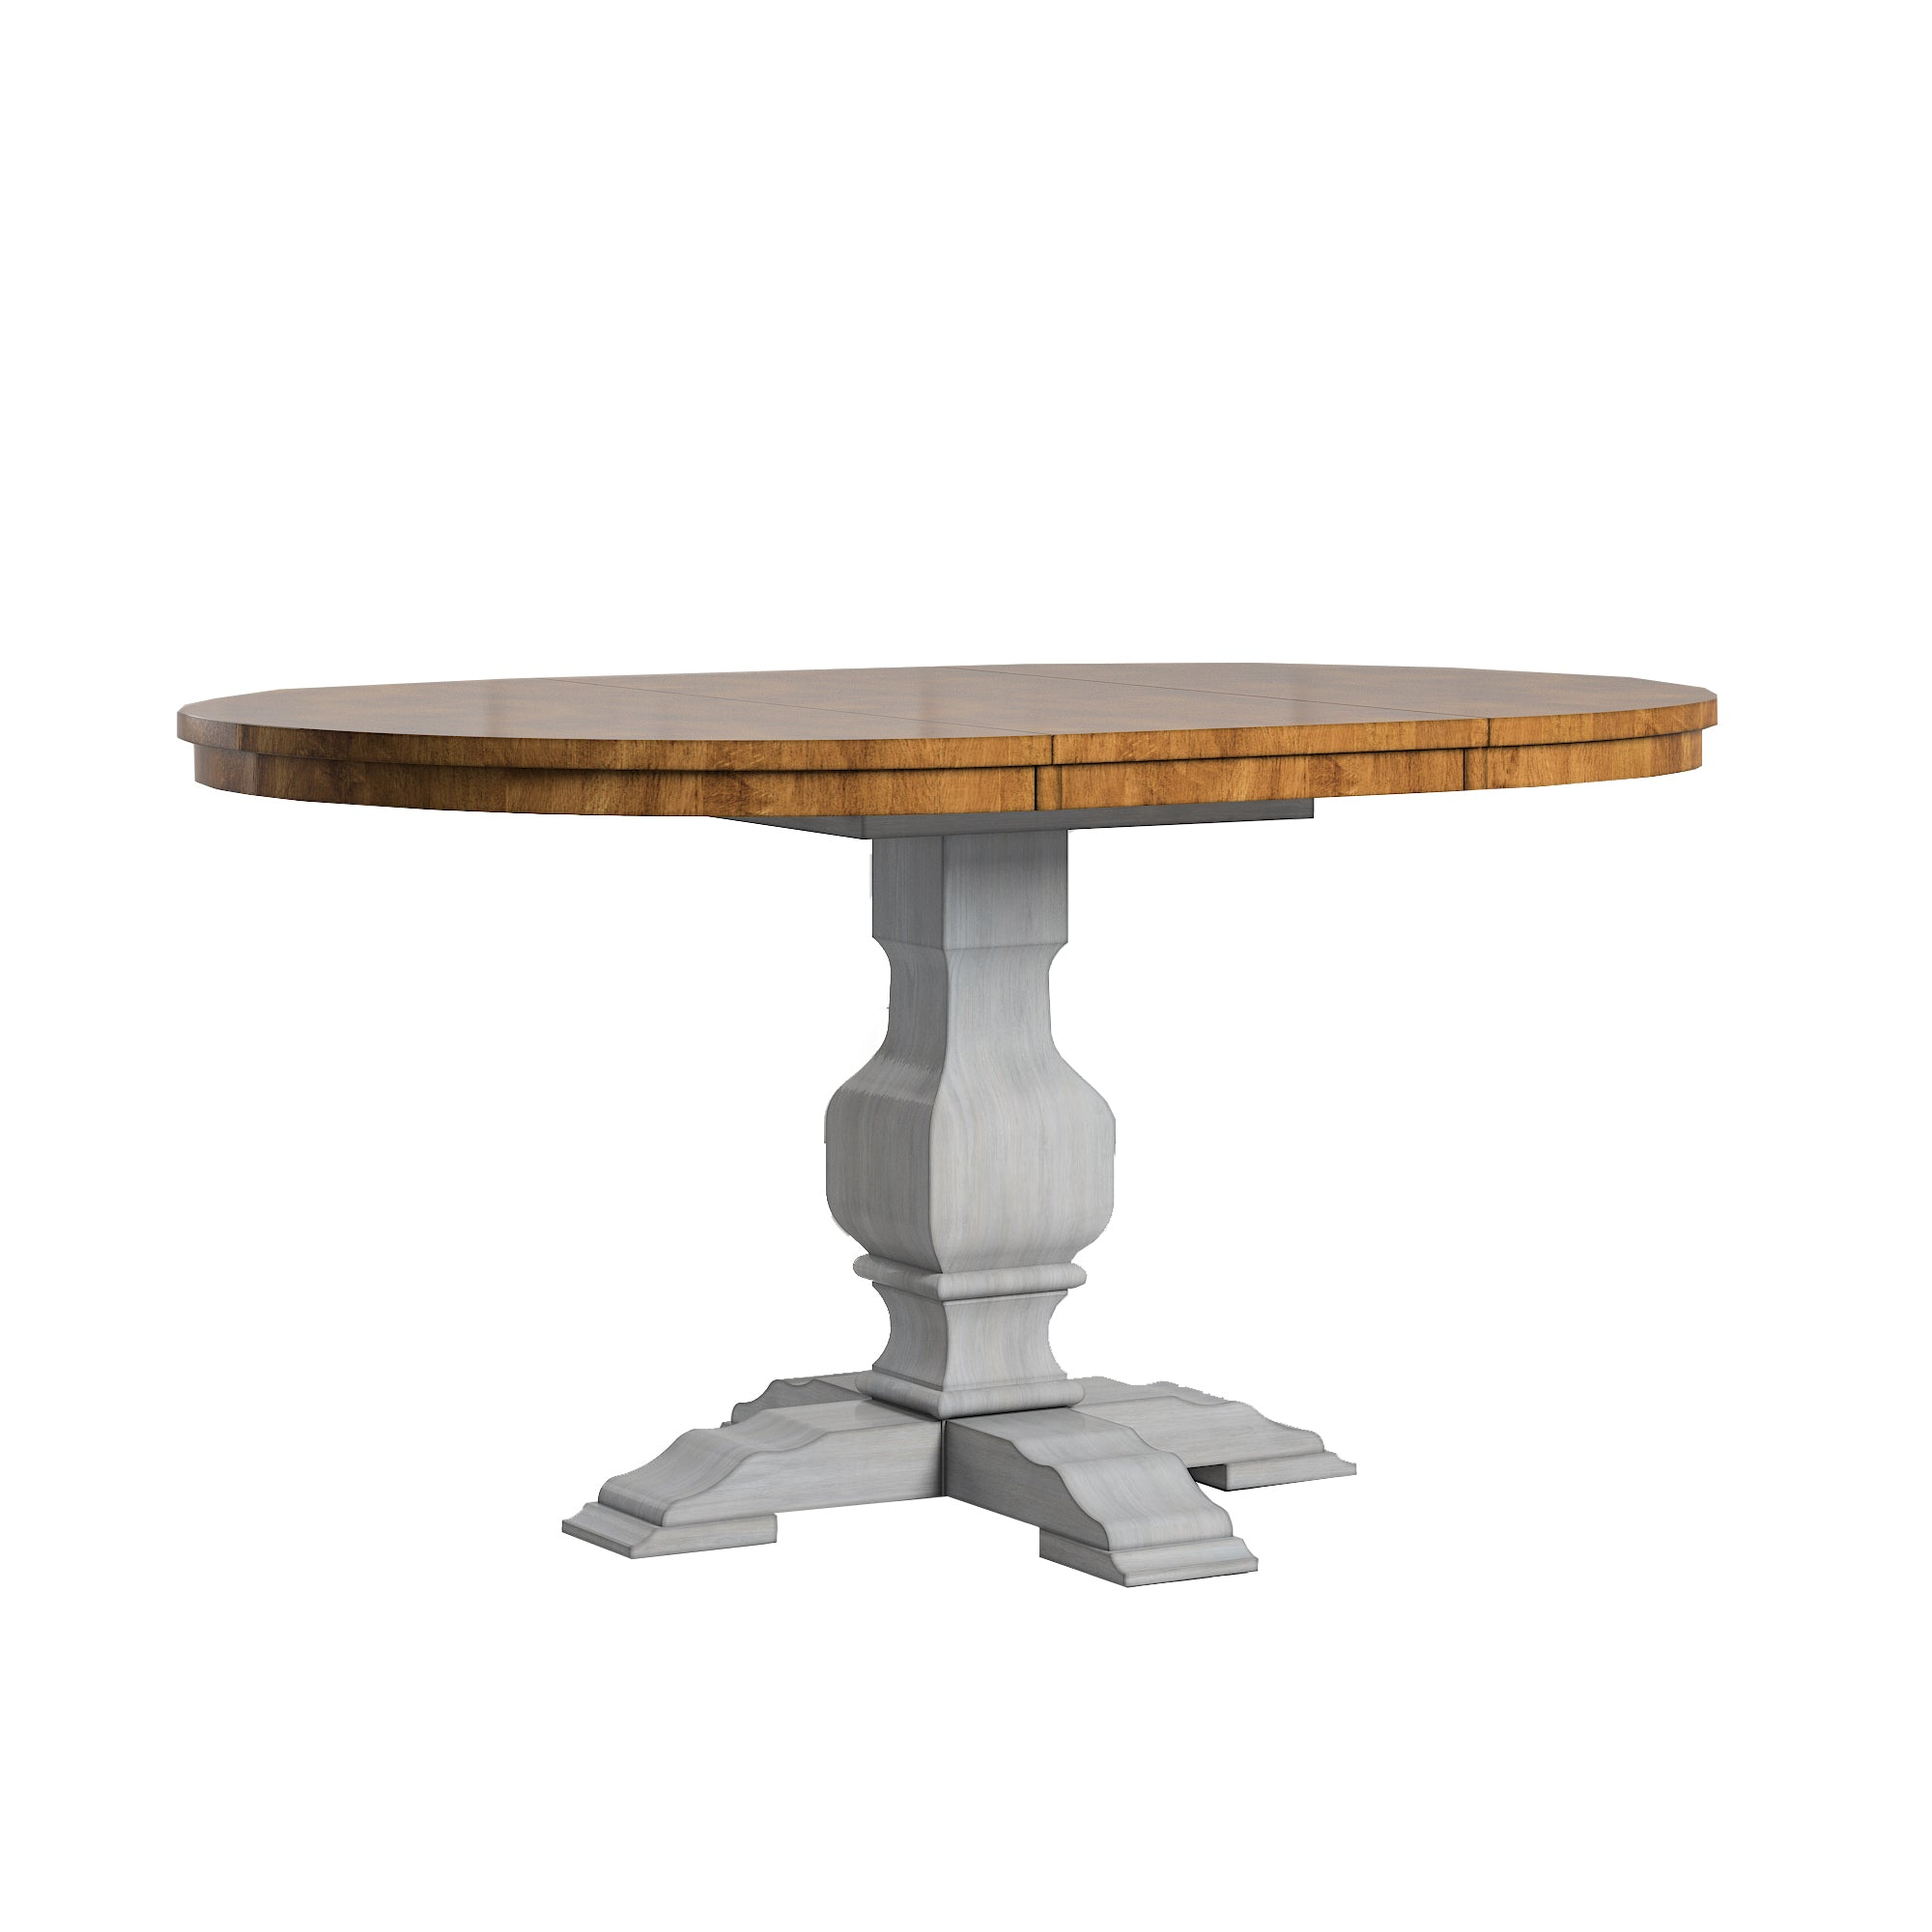 Two-Tone Oval Solid Wood Top Extending Dining Table - Oak Top with Antique Grey Base